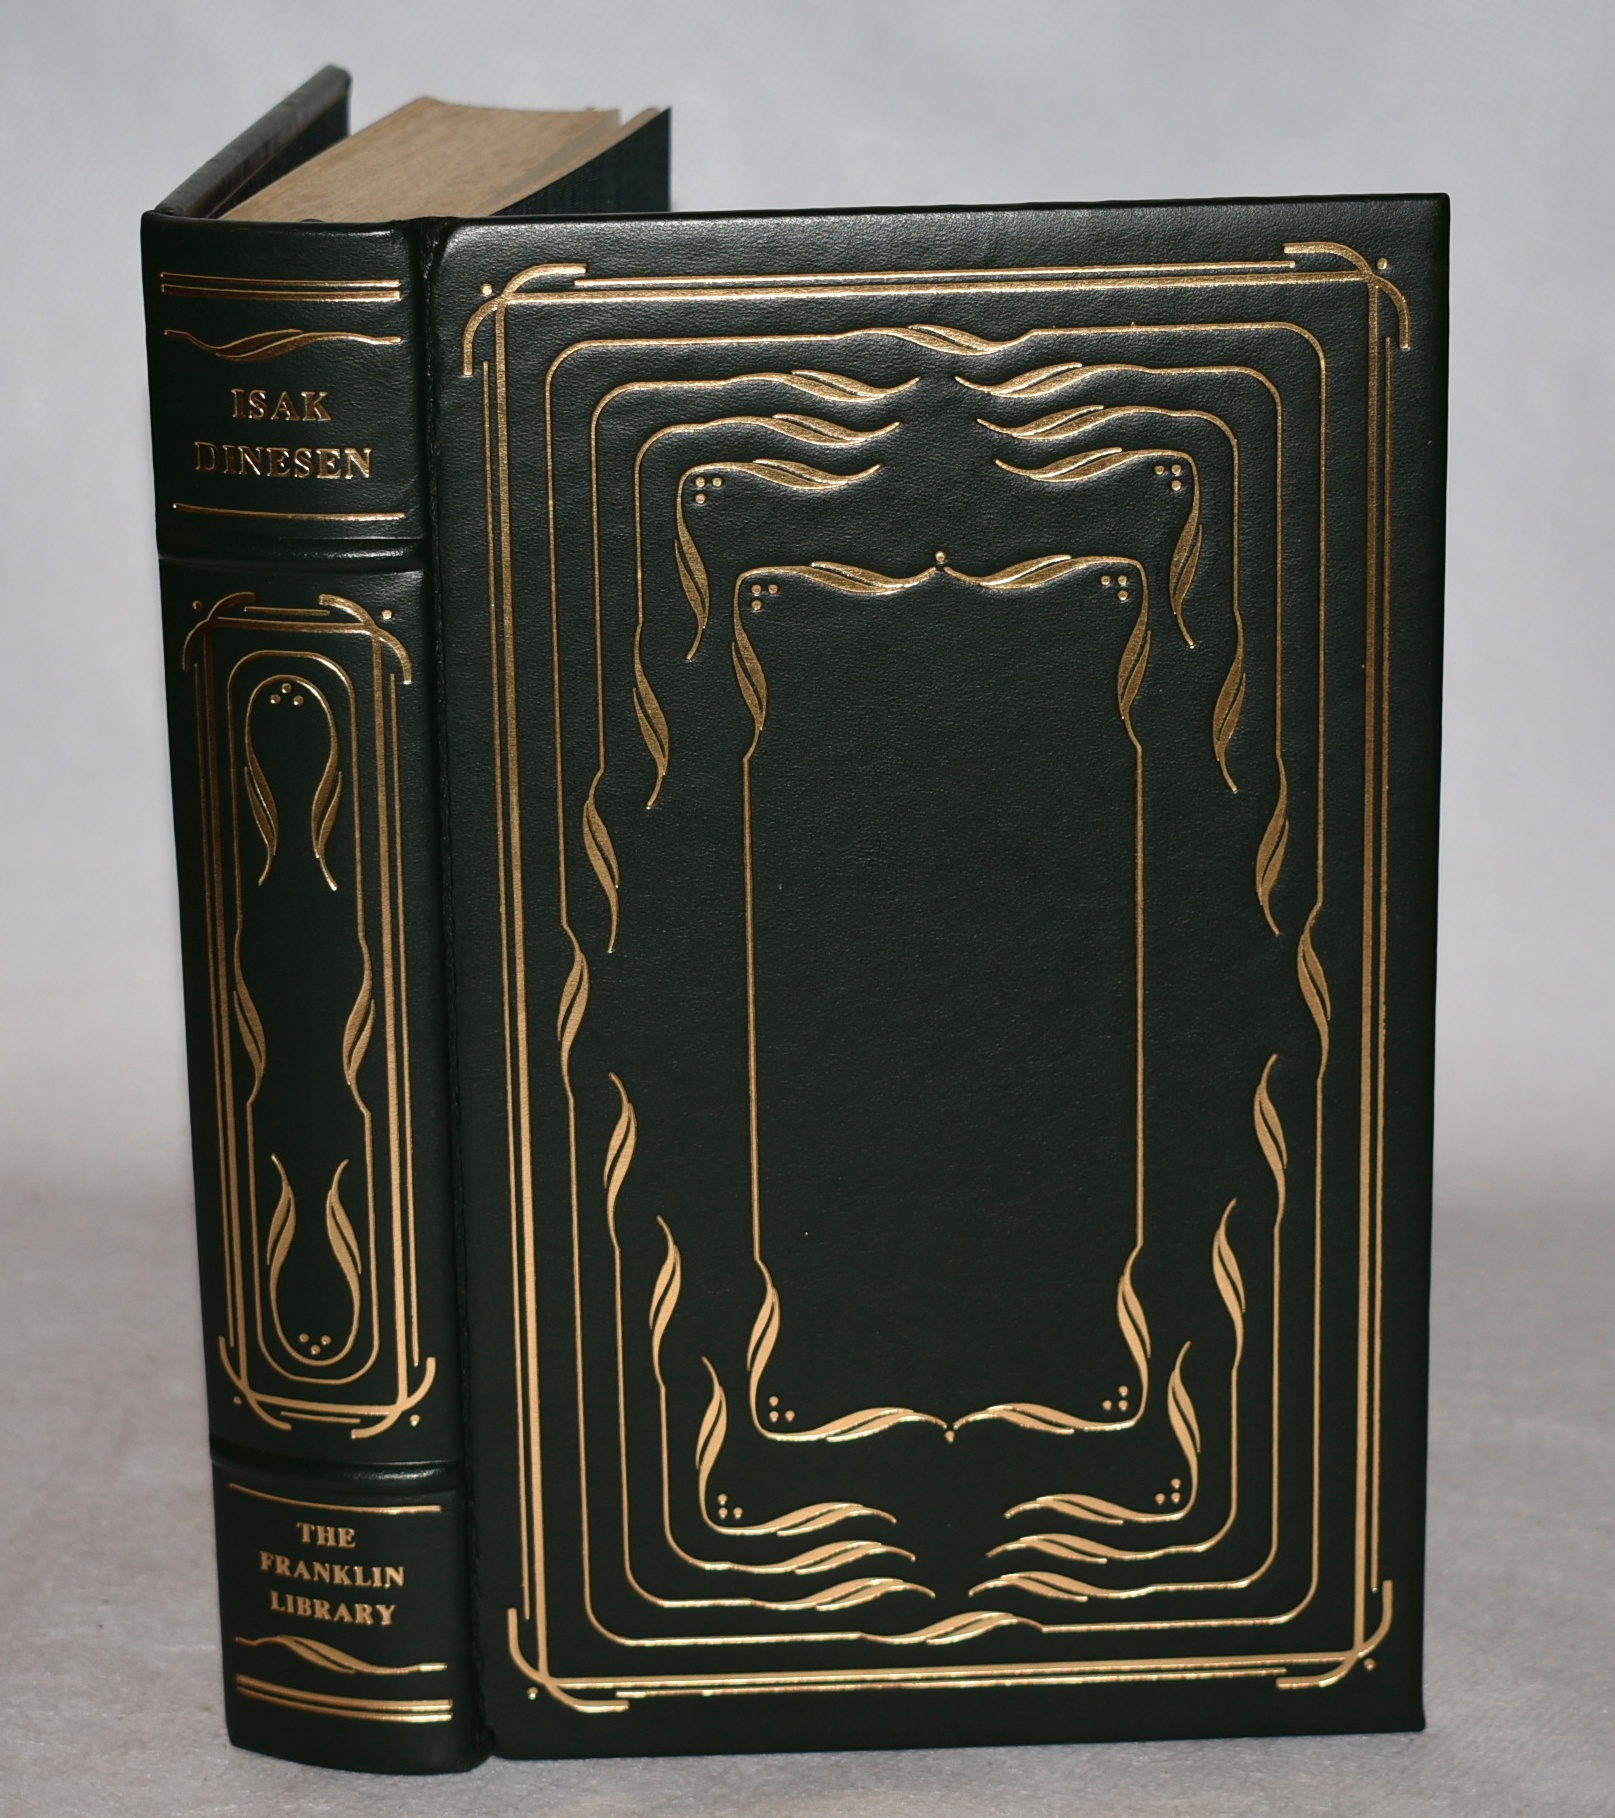 Image for Seven Gothic Tales. Illustrated by Bernard D'Andrea. Limited Edition in Leather Binding.